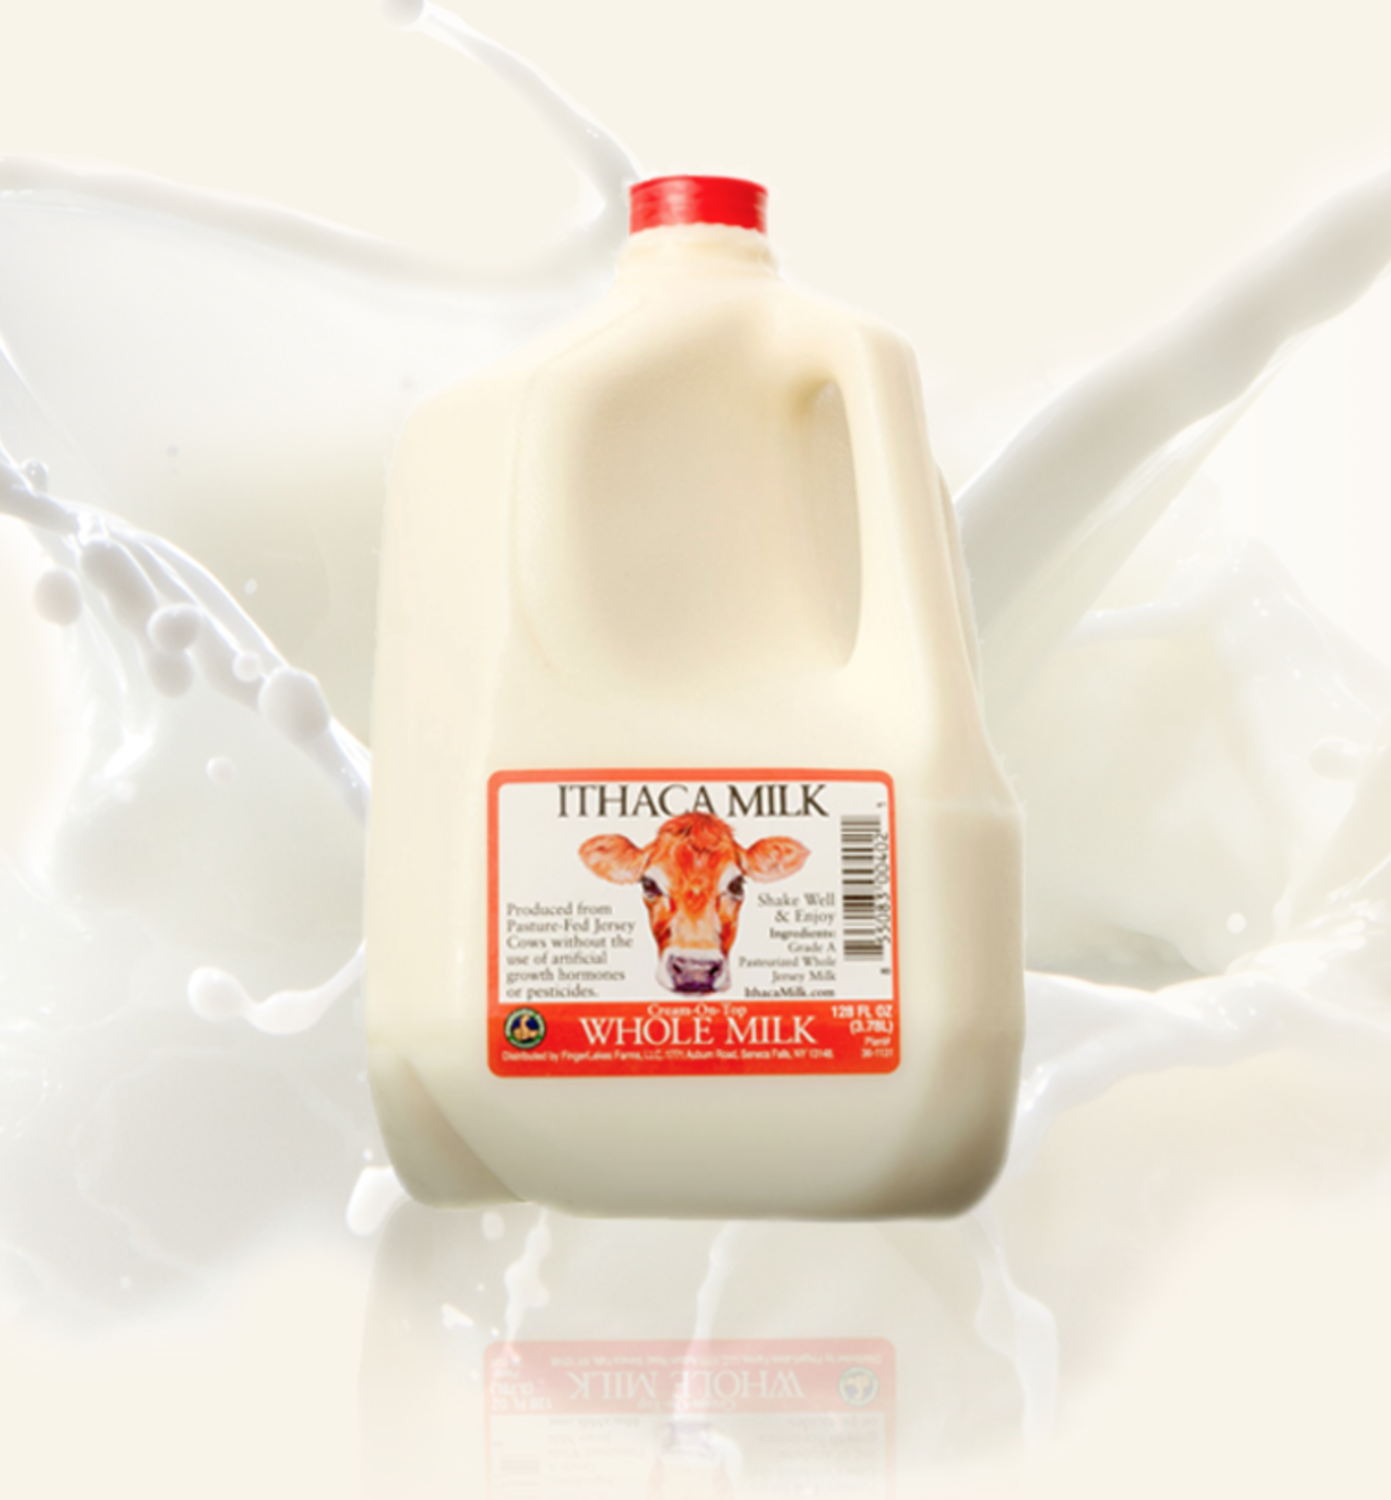 ITHACA MILK Whole Milk Gal (128 fl oz)